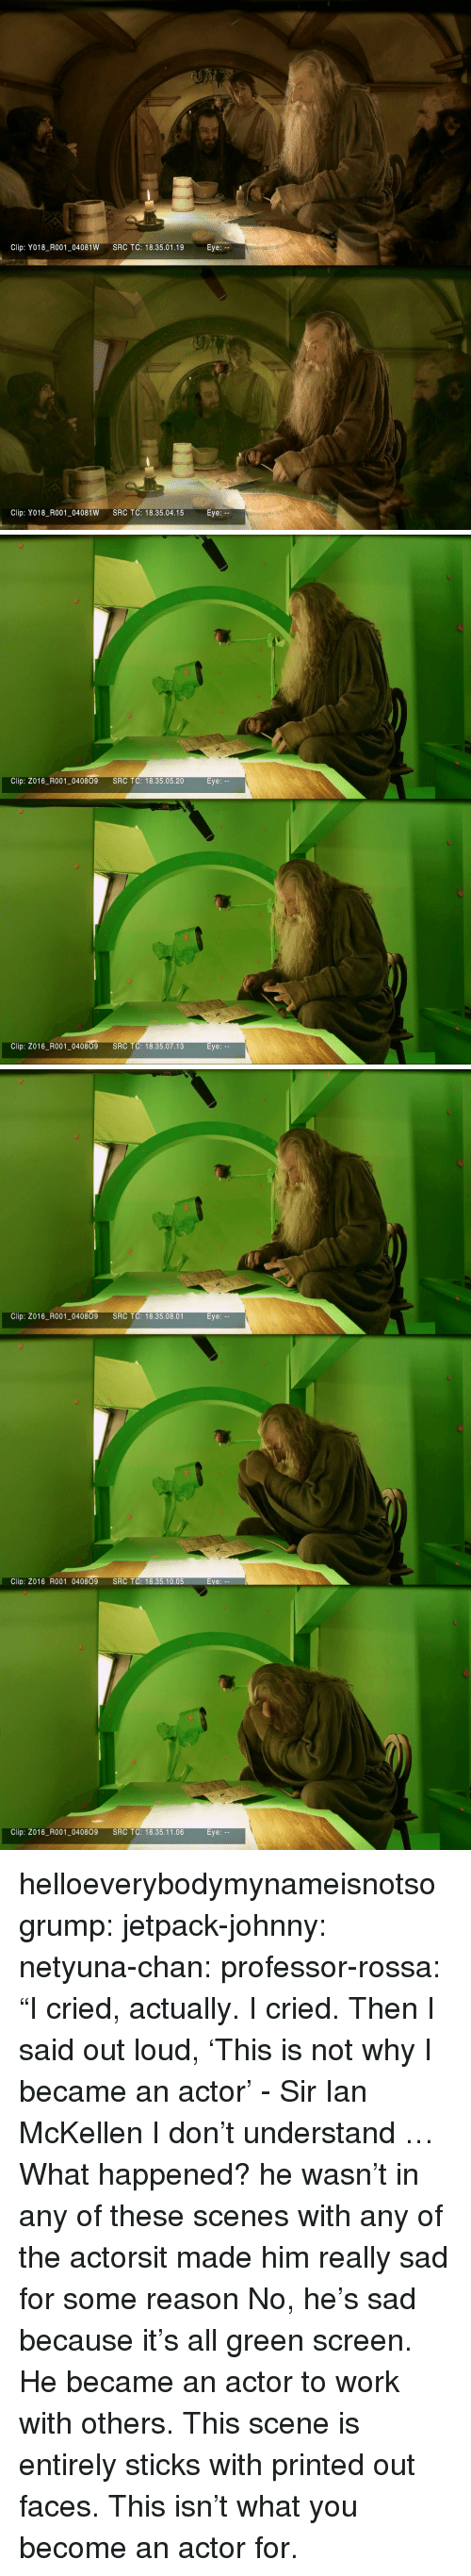 """Target, Tumblr, and Ian McKellen: Clip: Y018_R001-04081W  SRC TC: 18.35.01.19  Eye:  Clip: Y018_R001-04081W  SRC TC: 18.35.04.15  Eye:   Clip: Z016_R001_040809  SRC TC: 18.35.05.20  Clip: Z016_R001_040809  SRC TC: 18.35.07.13   Clip: Z016_R001_040809  SRC TC: 18.35.08.01  Clip: Z016 R001 040809 SRC TC: 18.35.10.05  Eve:  Clip: Z016_ R001 040809 SRC TC: 18.35.11.06 helloeverybodymynameisnotsogrump:  jetpack-johnny:  netyuna-chan:  professor-rossa:  """"I cried, actually.I cried. ThenI said out loud, 'This is not whyI became an actor' - Sir Ian McKellen  I don't understand … What happened?  he wasn't in any of these scenes with any of the actorsit made him really sad for some reason  No, he's sad because it's all green screen. He became an actor to work with others. This scene is entirely sticks with printed out faces. This isn't what you become an actor for."""